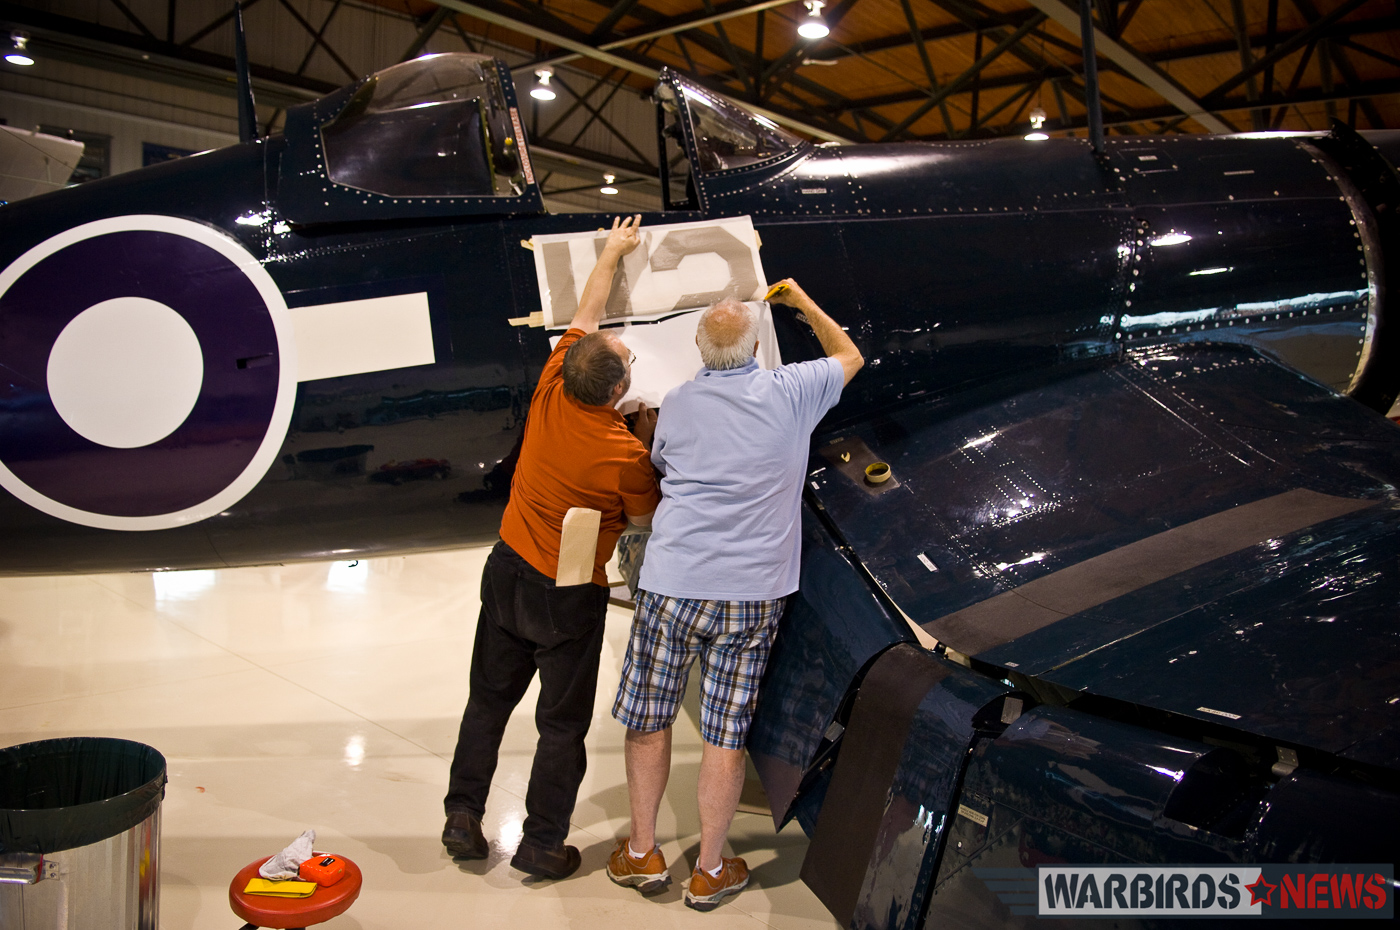 Dave O'Malley (right) and a colleague applying the decals to transform FG-1D Bu.92106 into Robert Hampton Gray's Corsair IV. (photo by Peter Handley)